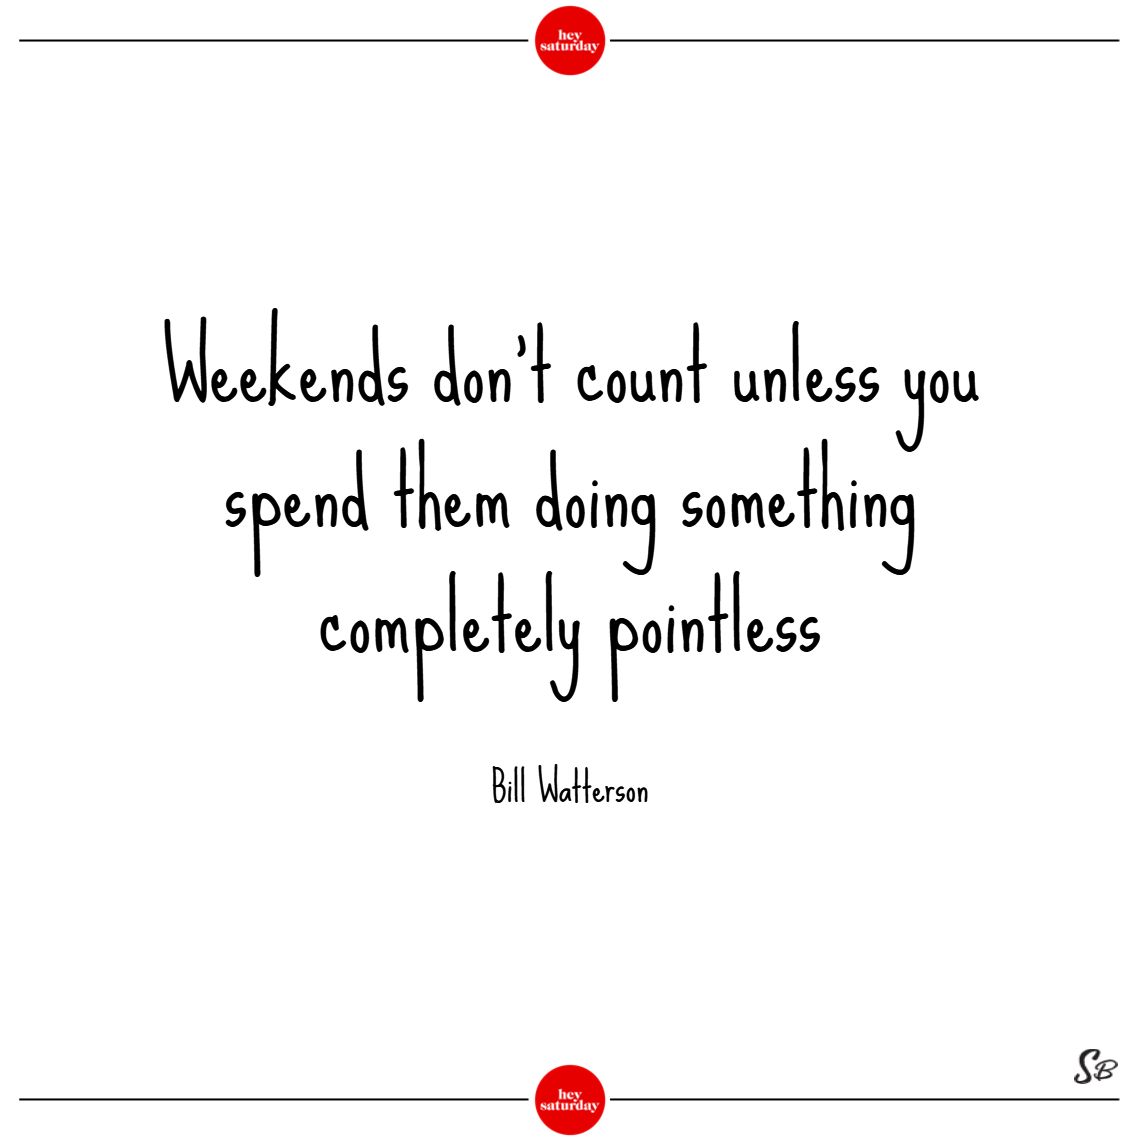 Weekends don't count unless you spend them doing something completely pointless. – bill watterson